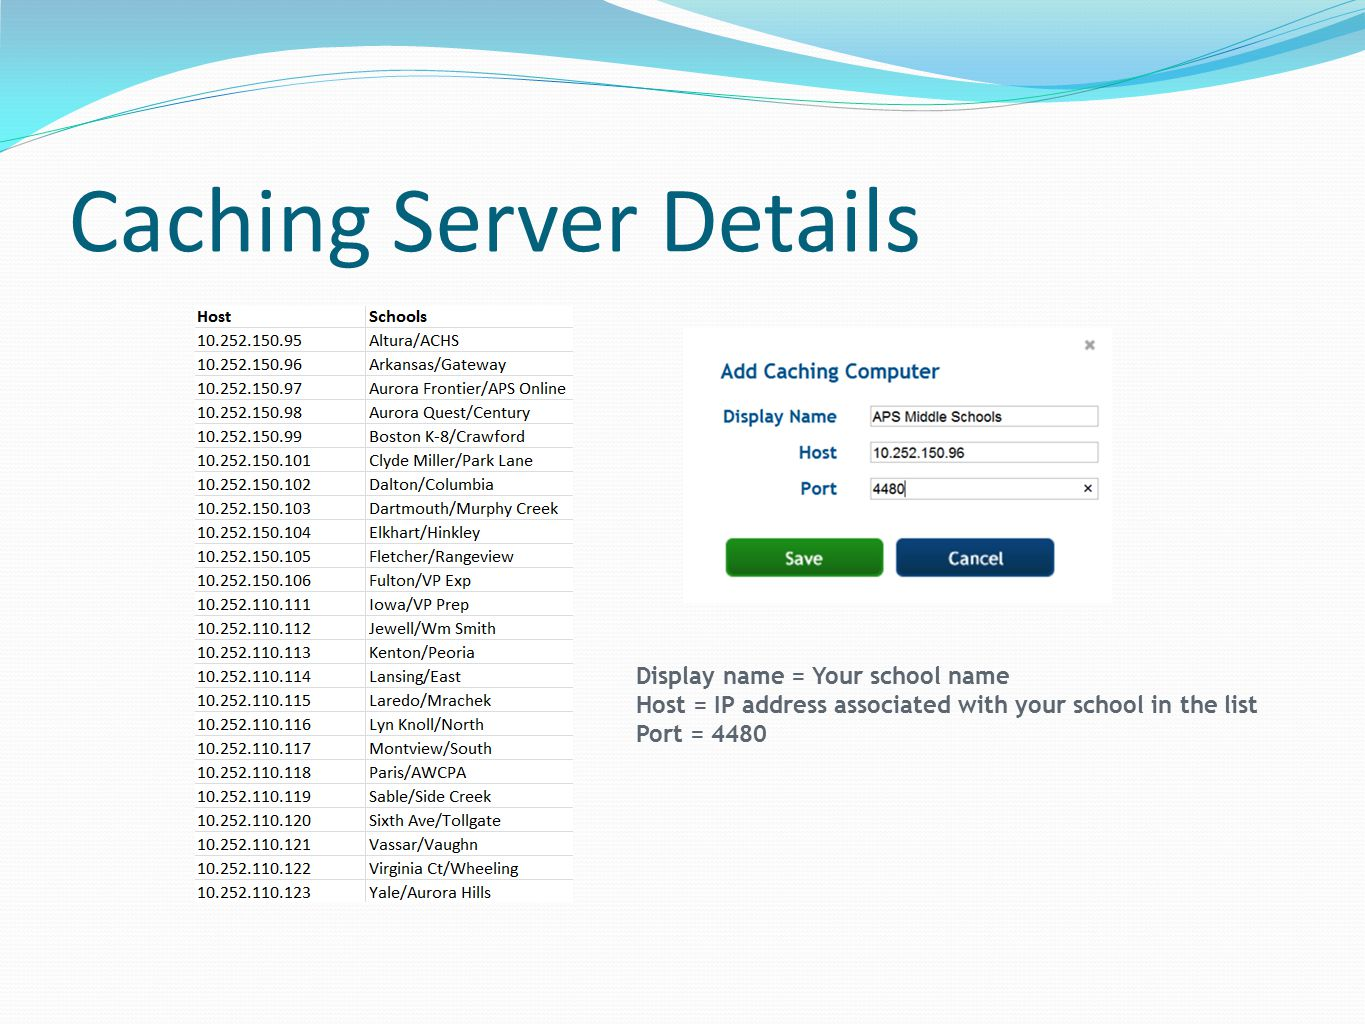 Caching Server Details Display name = Your school name Host = IP address associated with your school in the list Port = 4480